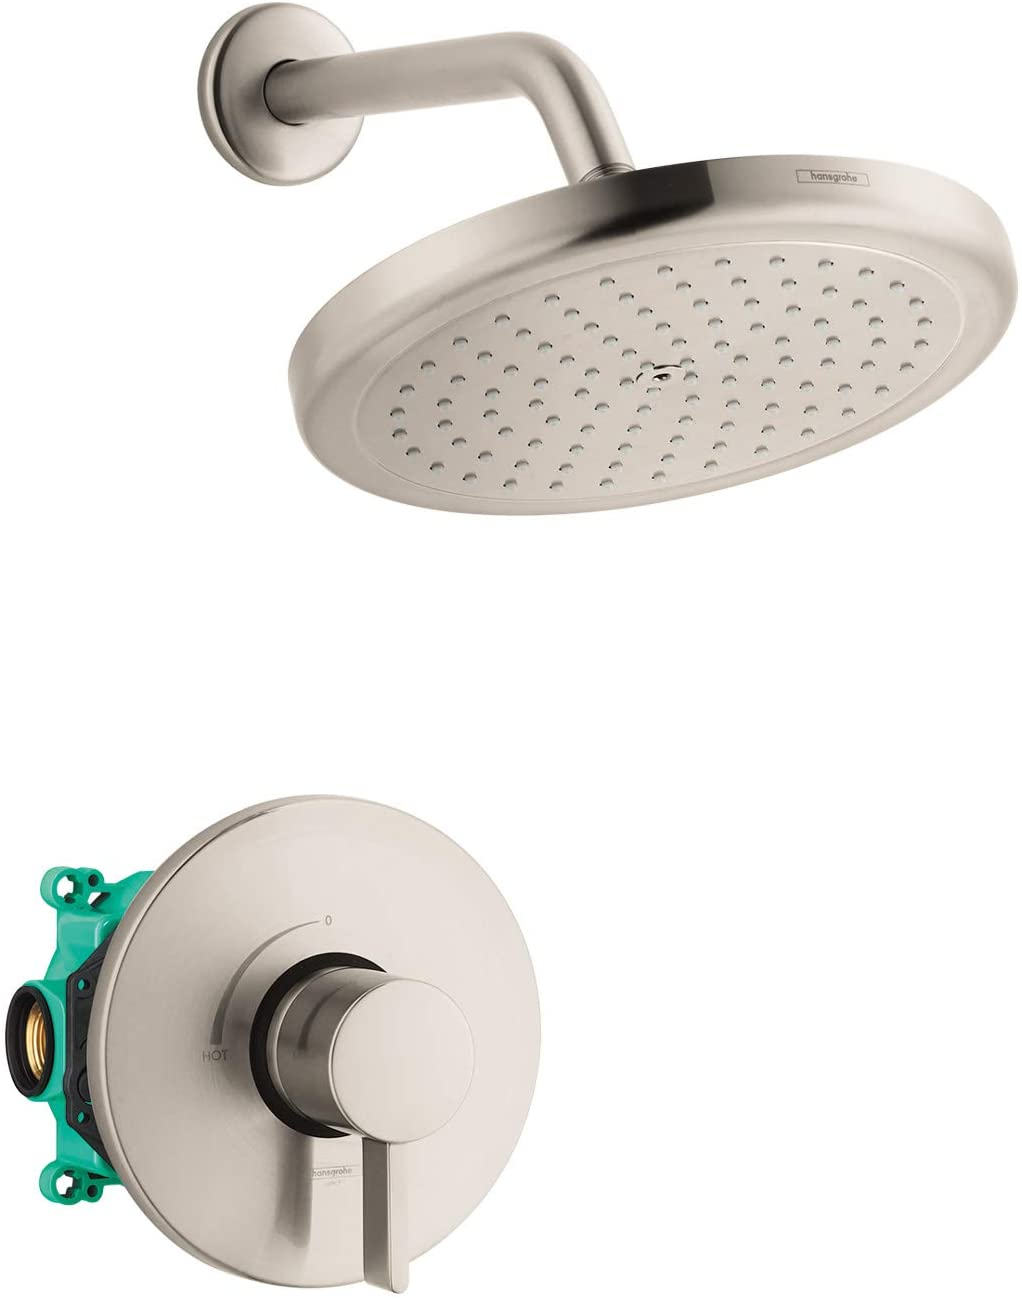 hansgrohe Croma Complete Shower System Shower Set Modern 1-Spray in Brushed Nickel, Rough and Shower Valve Included 2 GPM, 04909820